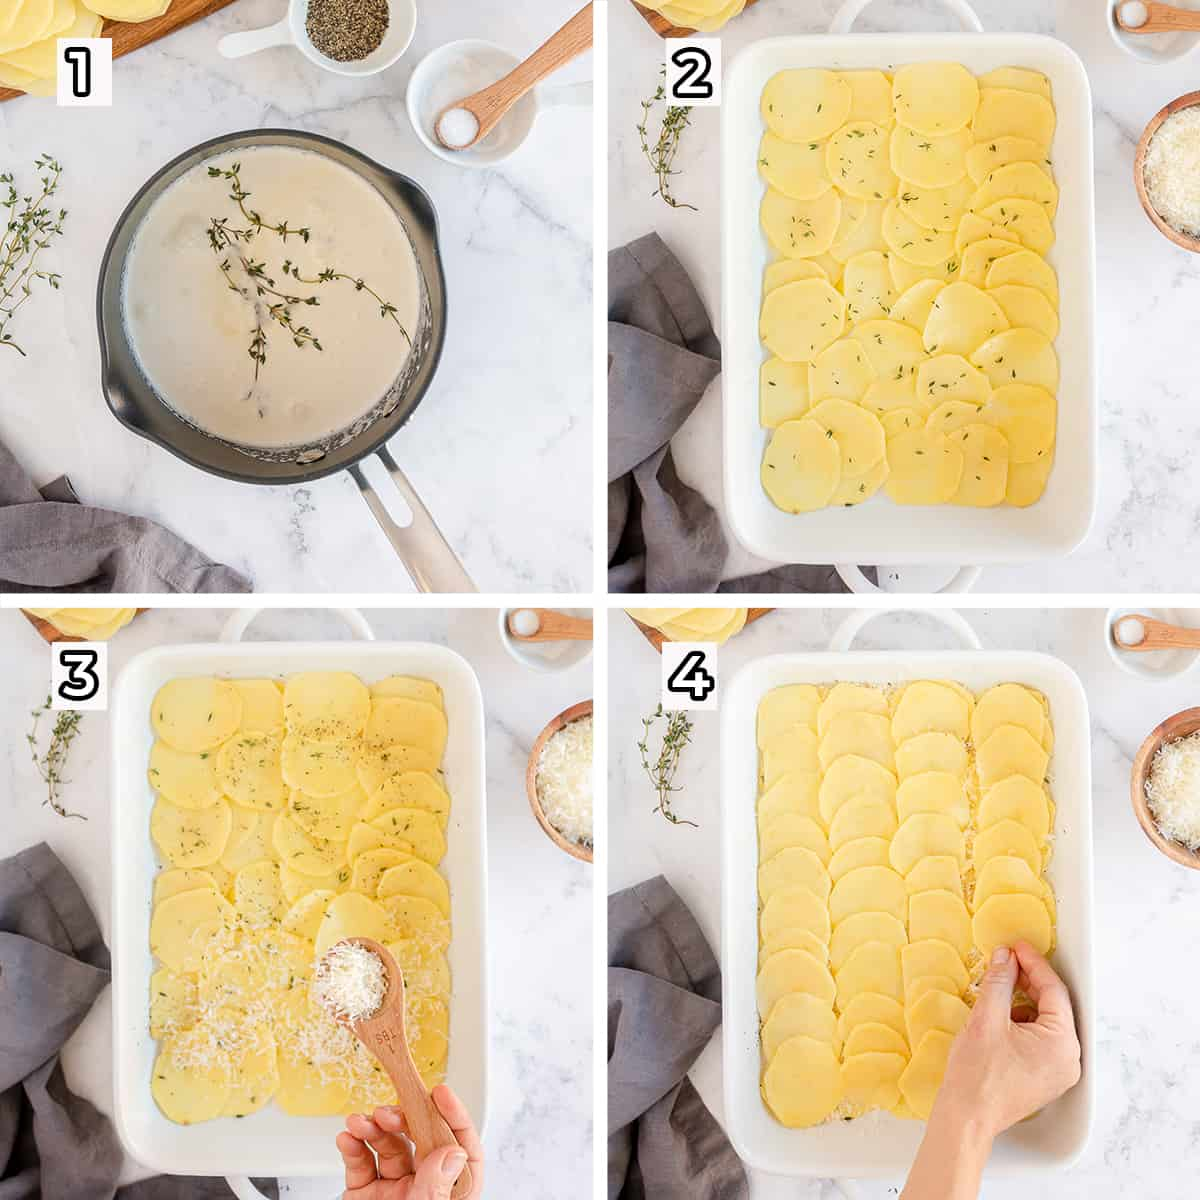 Potatoes are layered in a baking dish and seasoned.